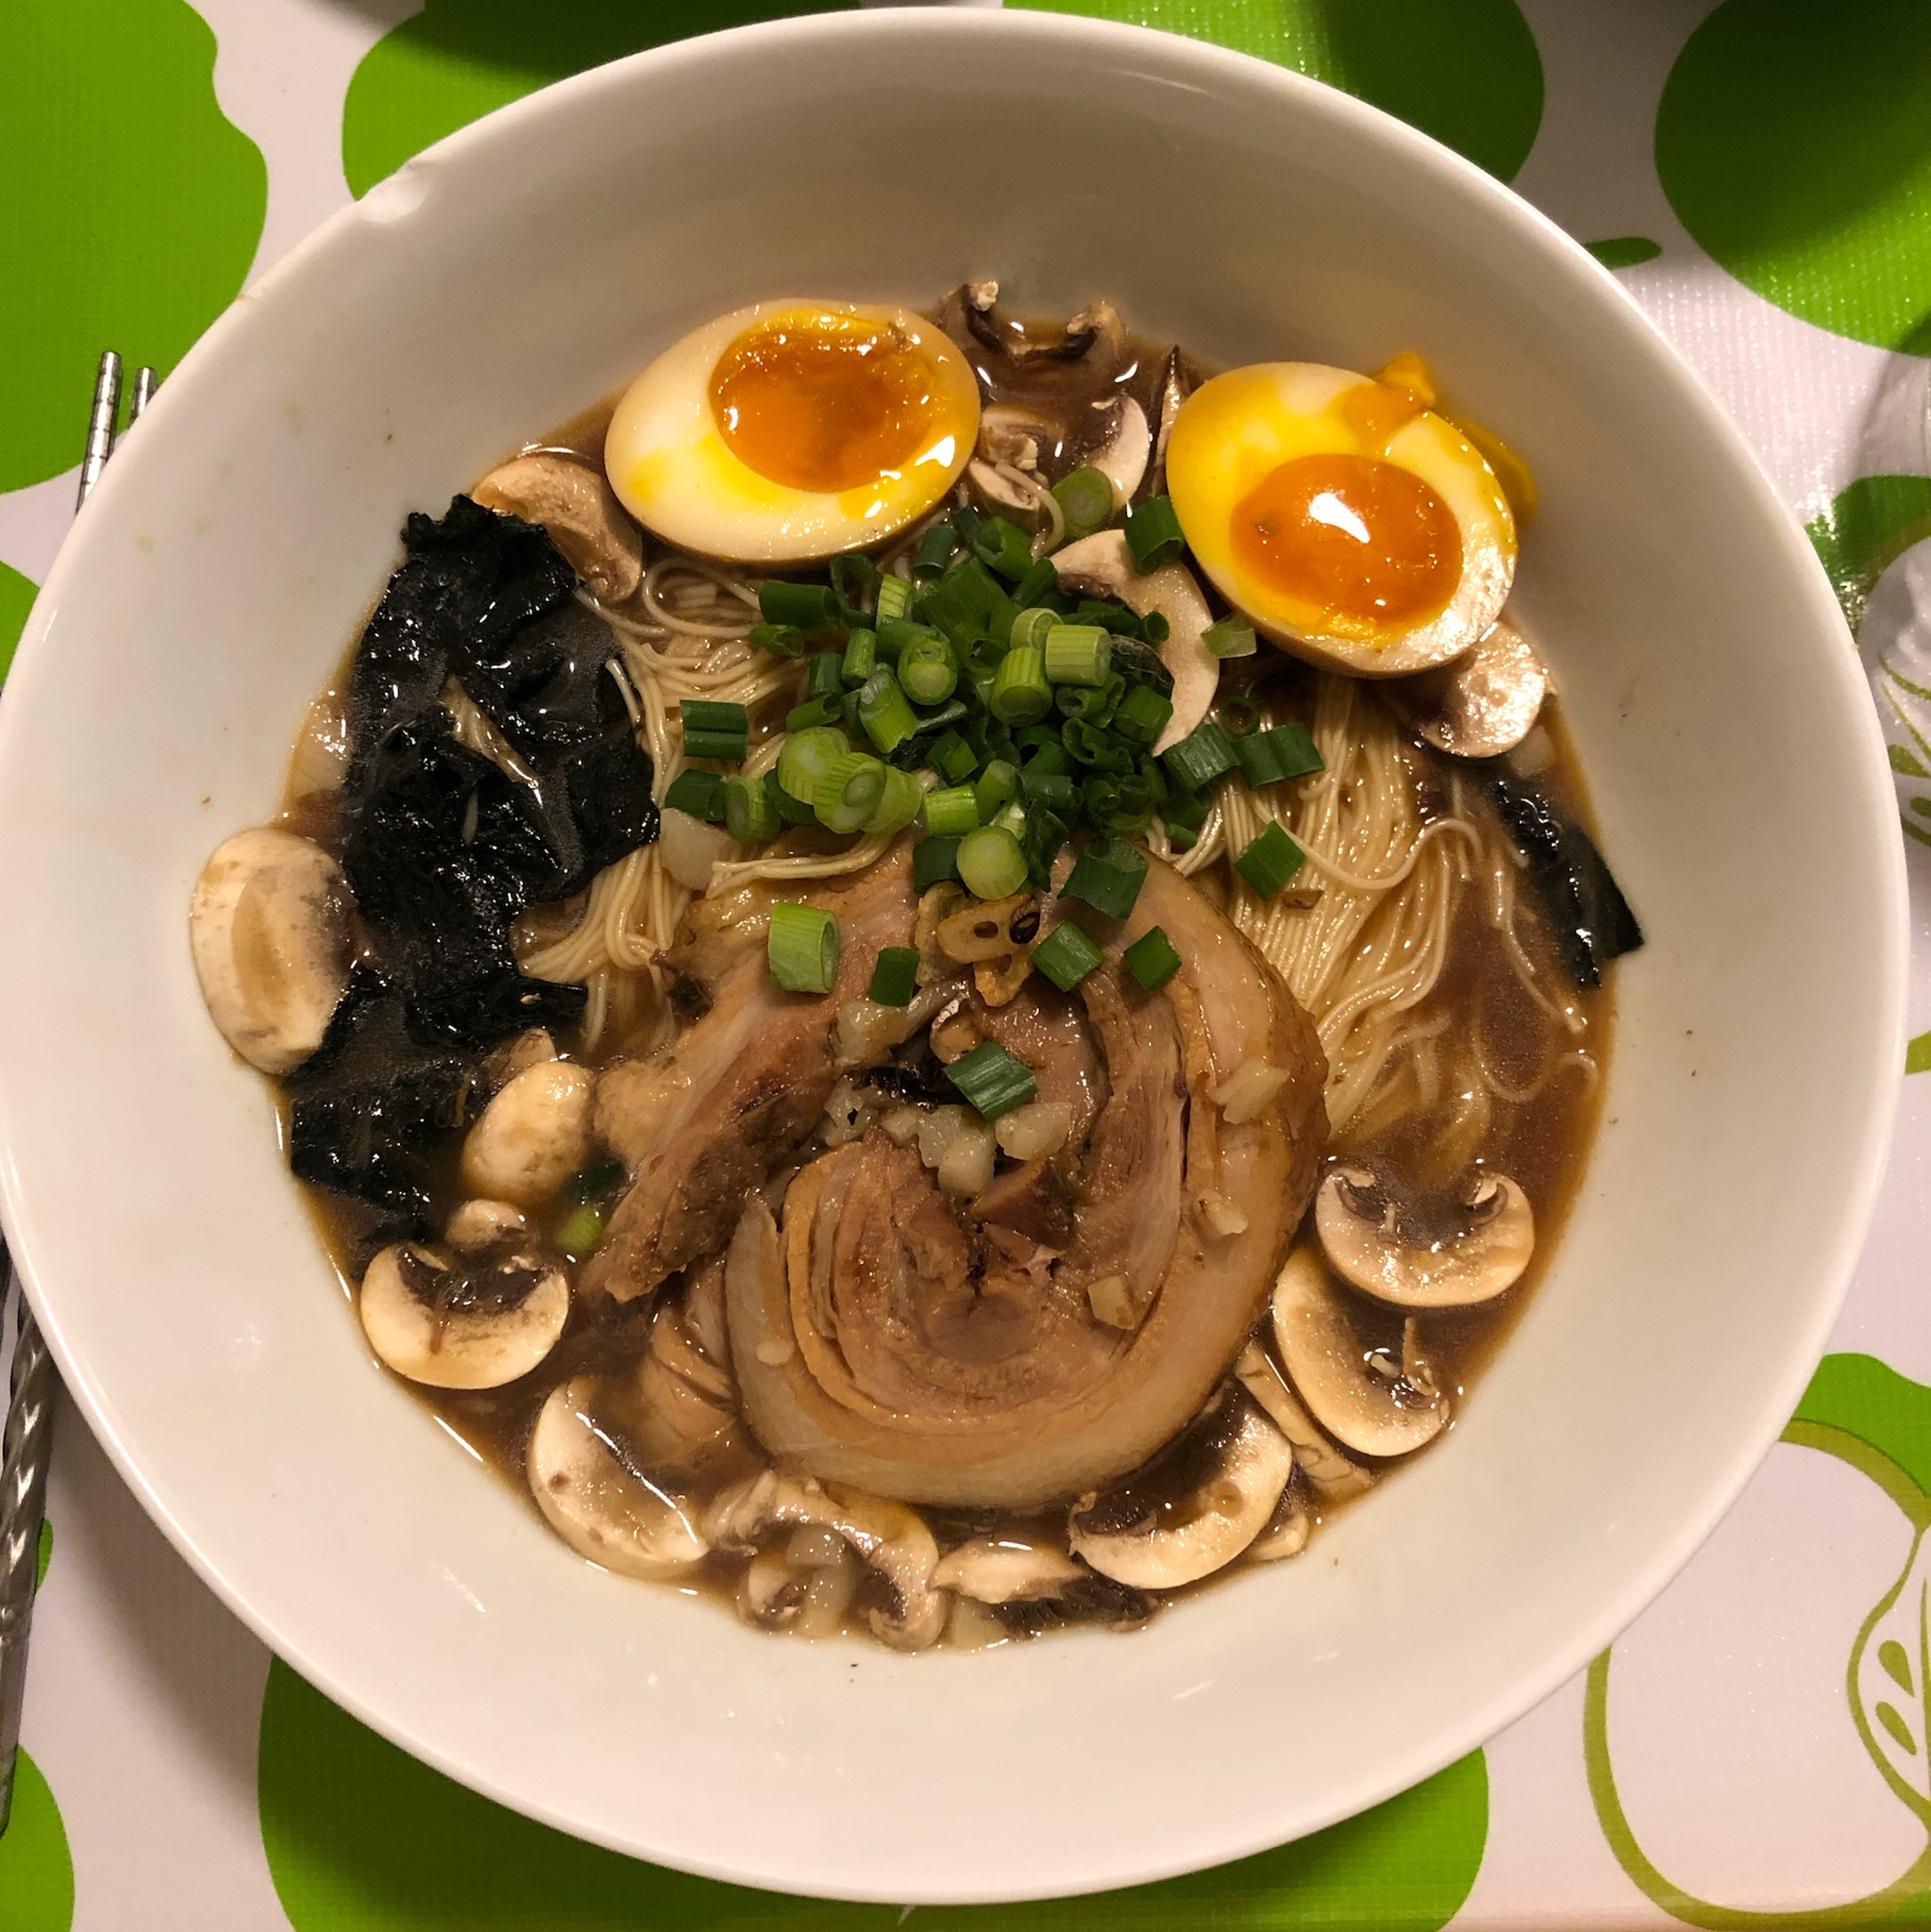 Homemade Tonkatsu ramen, chashu braised pork belly, chashu marinated egg, nori, mushrooms, scallion